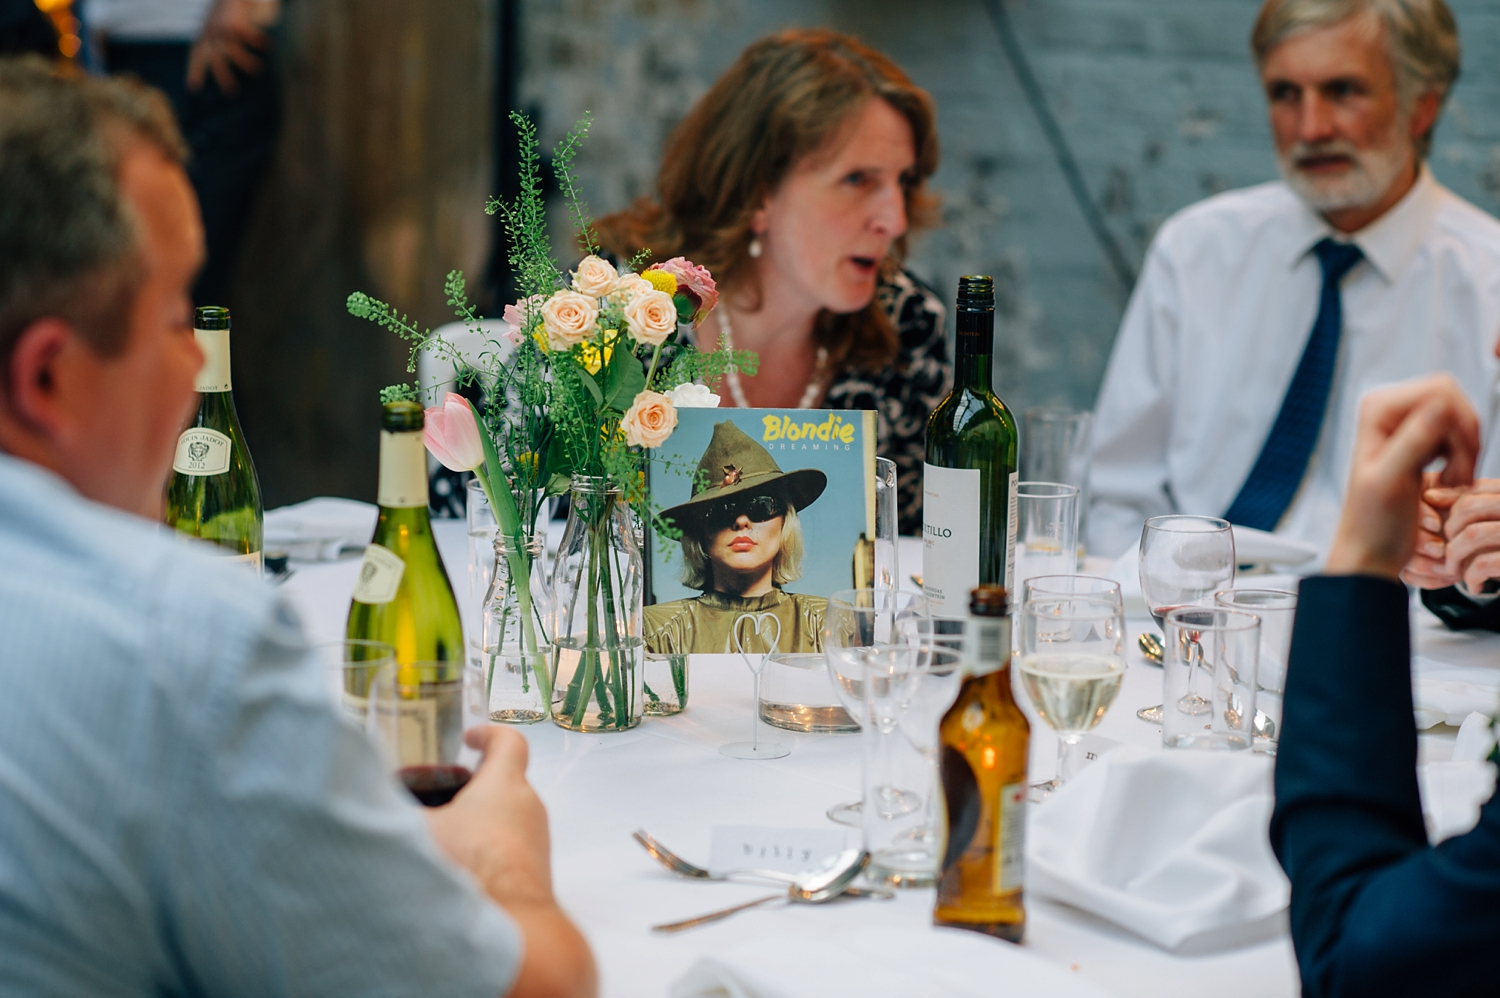 0147-lisa-devine-alternative-wedding-photography-london-hackney-dalston-london-photography-townhall-hotel.JPG